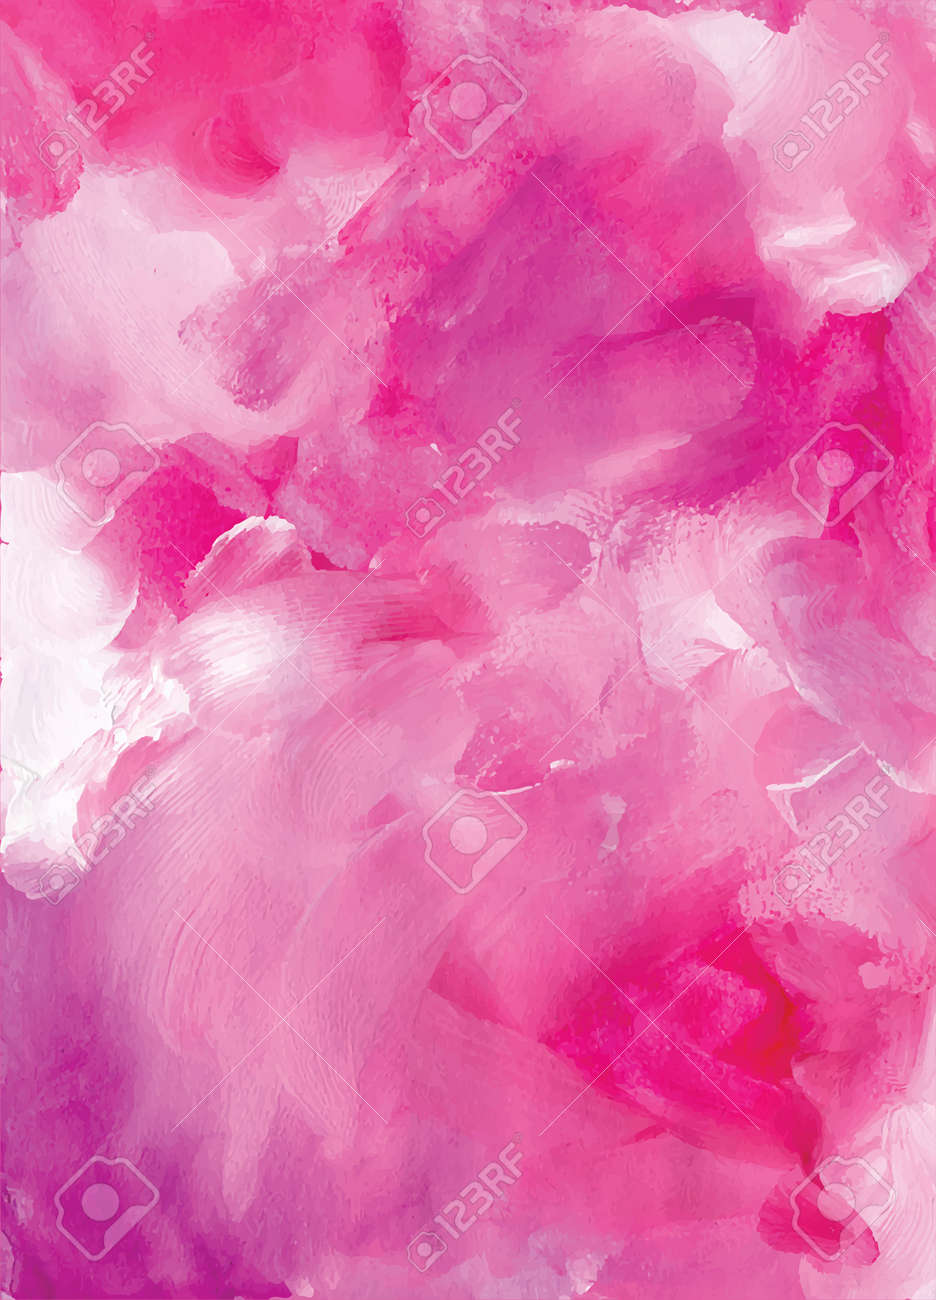 Abstract pink watercolor background hand drawn illustration - 169282139